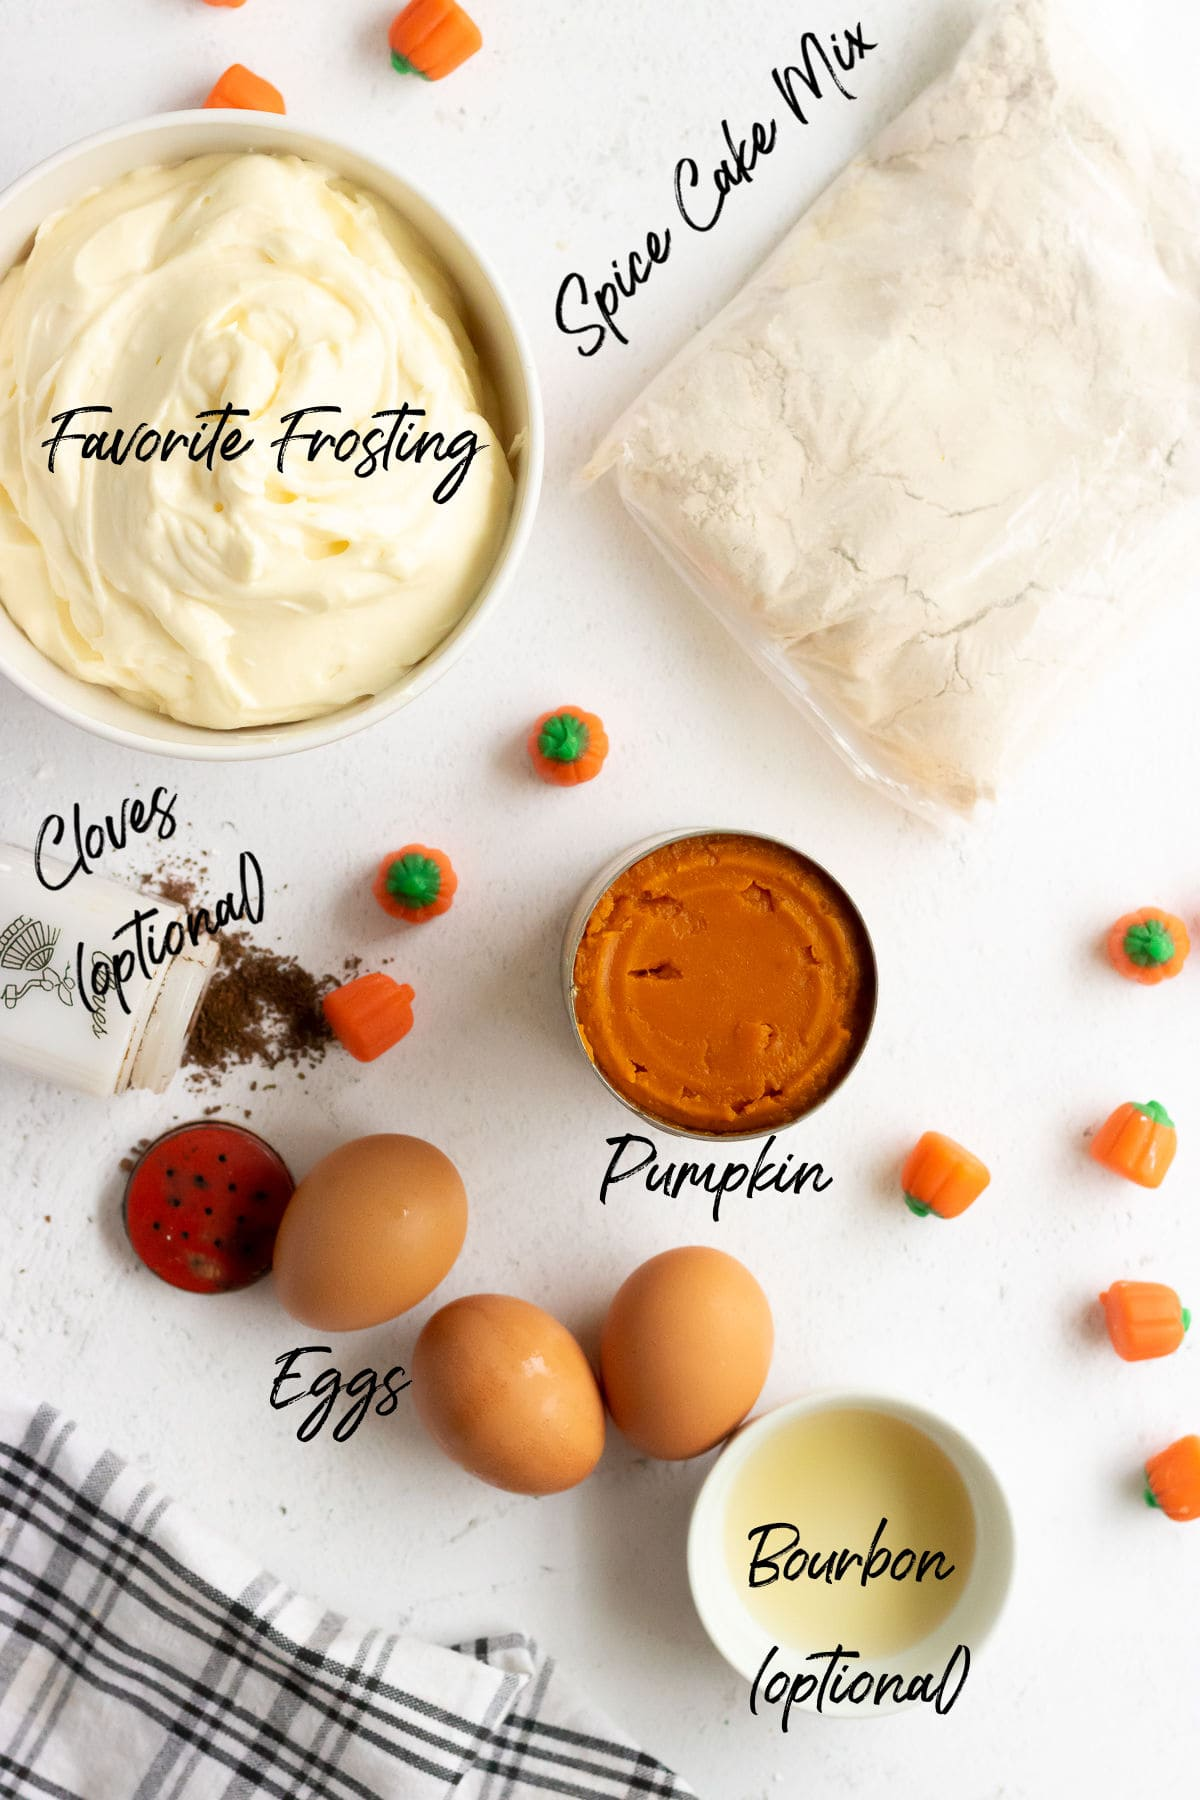 Labeled ingredients for the pumpkin cake.